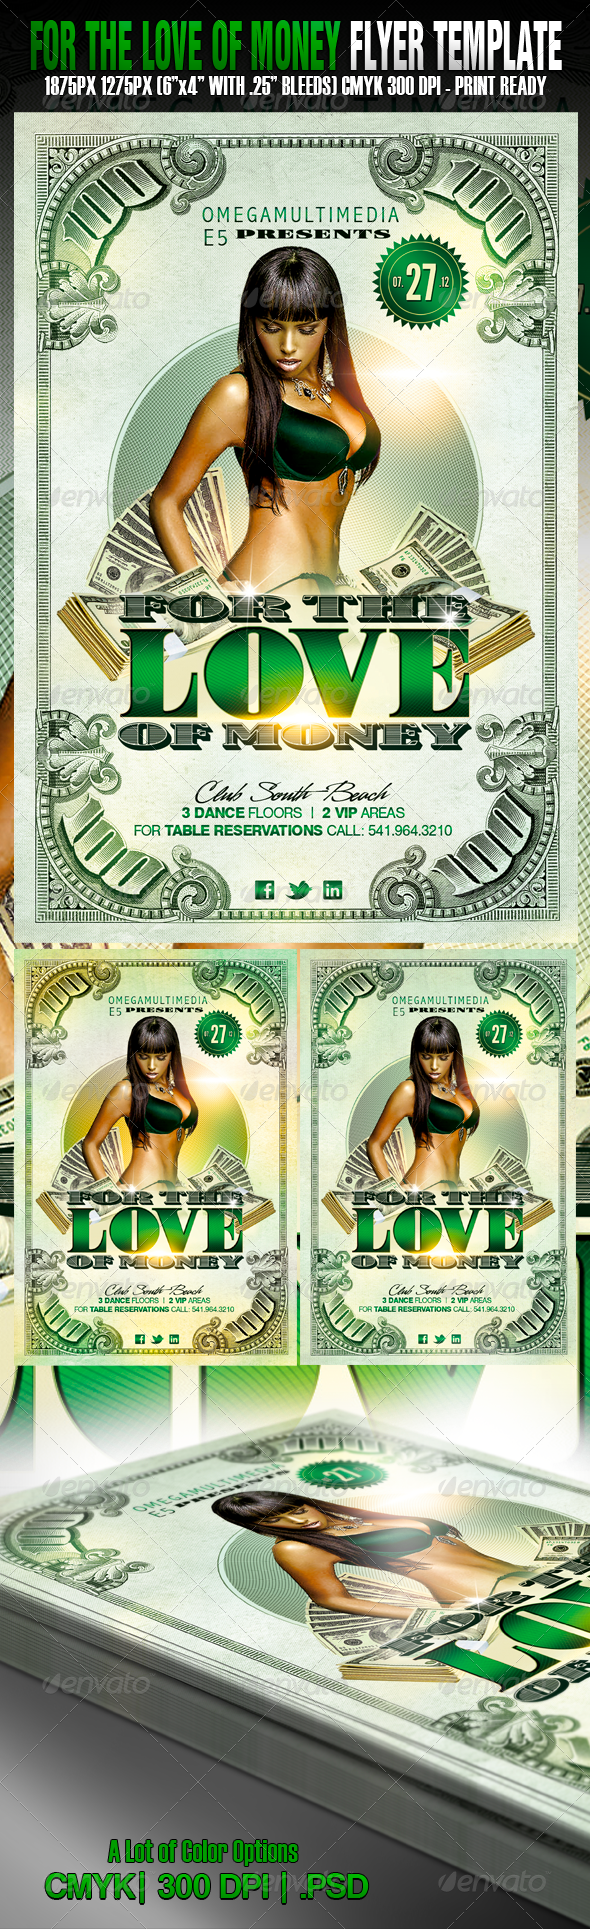 For The Love Of Money Club Parties Flyer Template And Template - Money flyer template